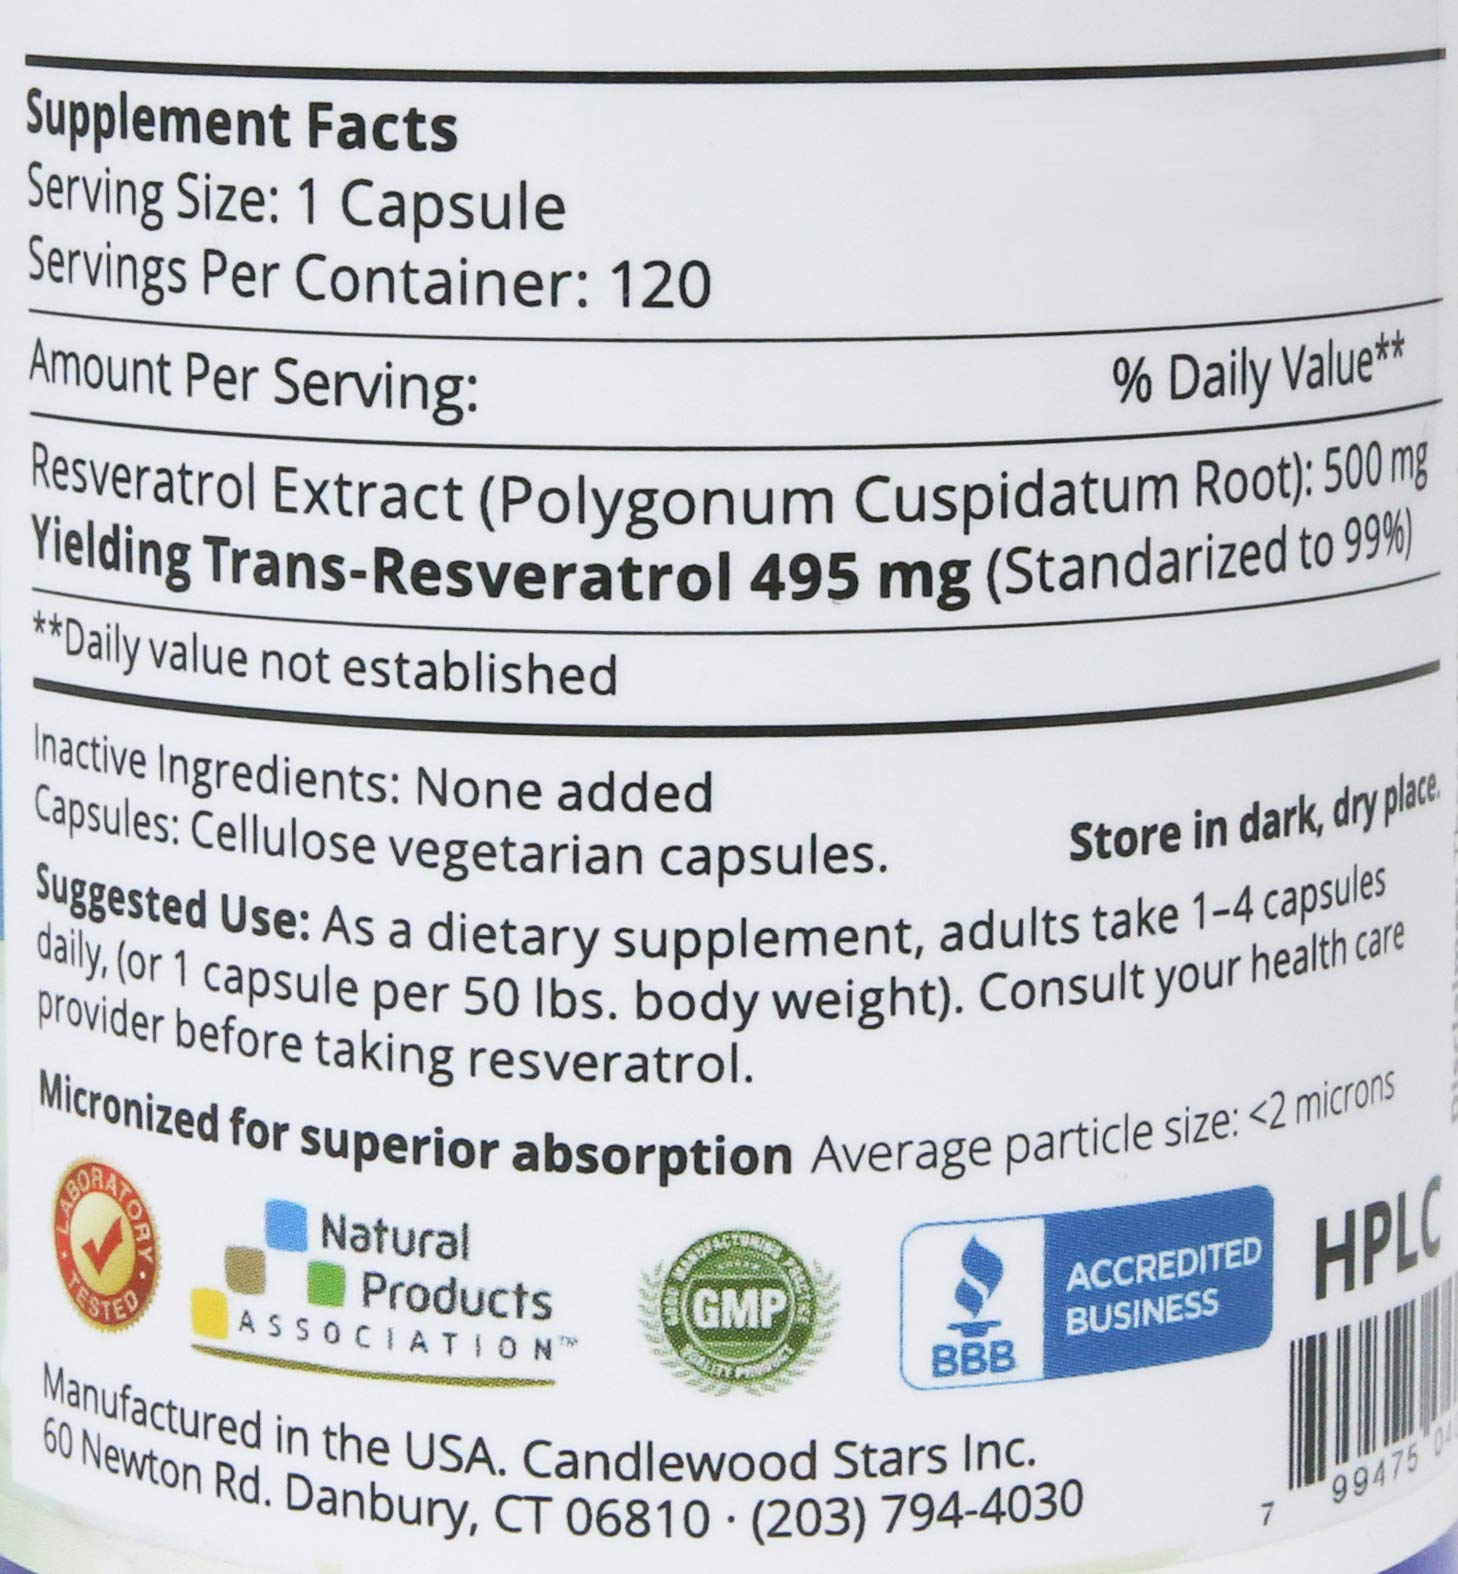 Mega Resveratrol, Pharmaceutical Grade, 99% Pure Micronized Trans-Resveratrol, 120 Vegetarian Capsules, 500 mg per Capsule. Purity Certified. Absolutely no excipients (aka Inactive Ingredients) Added by Mega Resveratrol (Image #3)